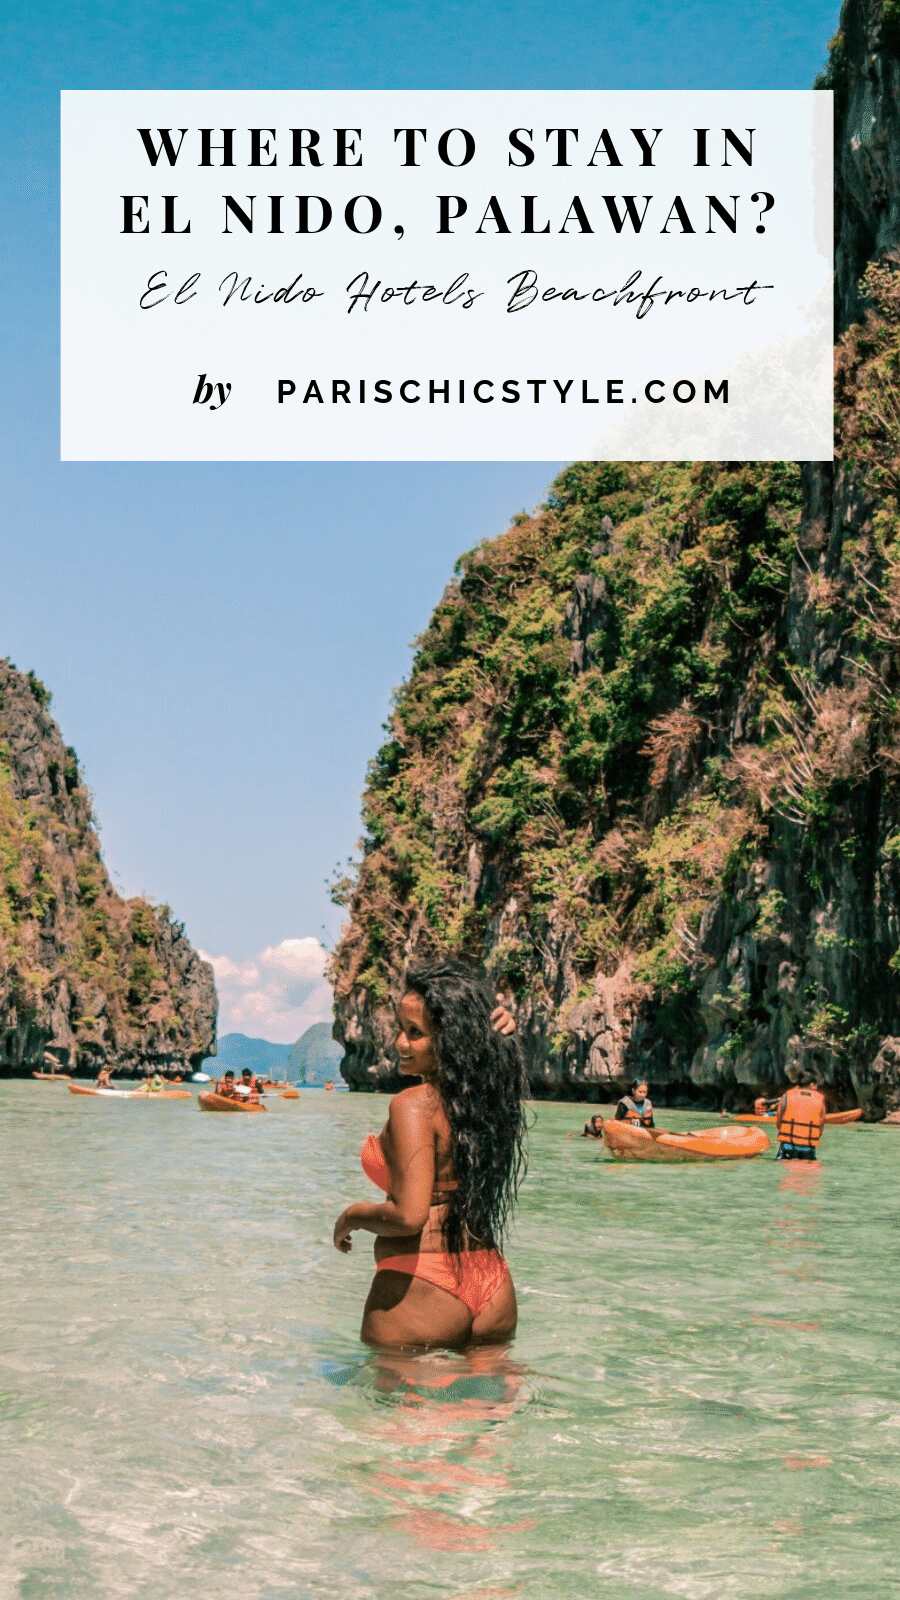 where to stay in el nido beachfront hotels palawan paris chic style pinterest